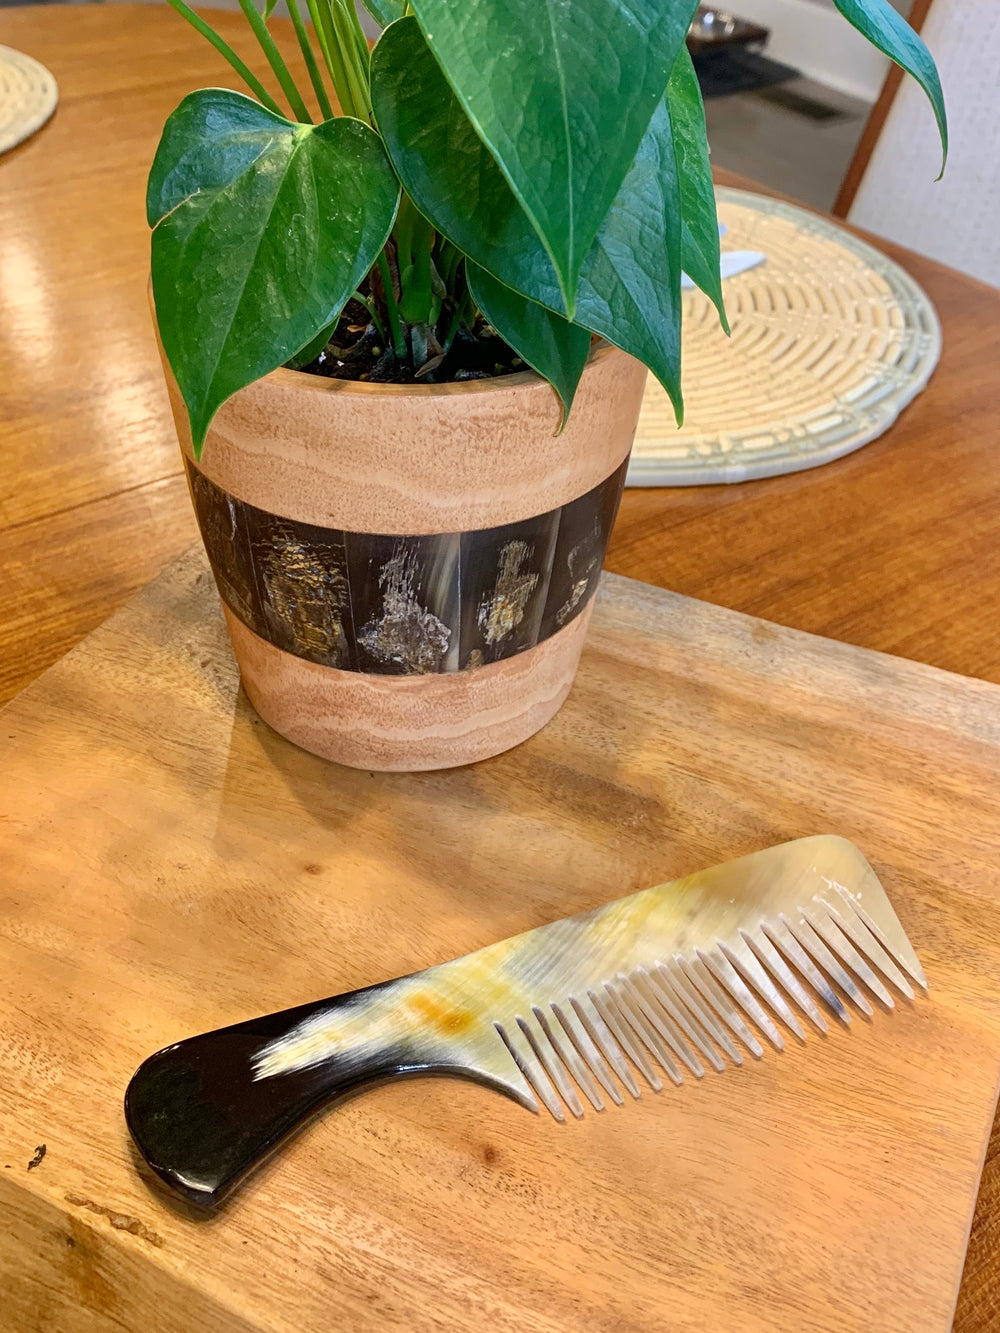 Horn Comb by Atelier Calla from Haiti